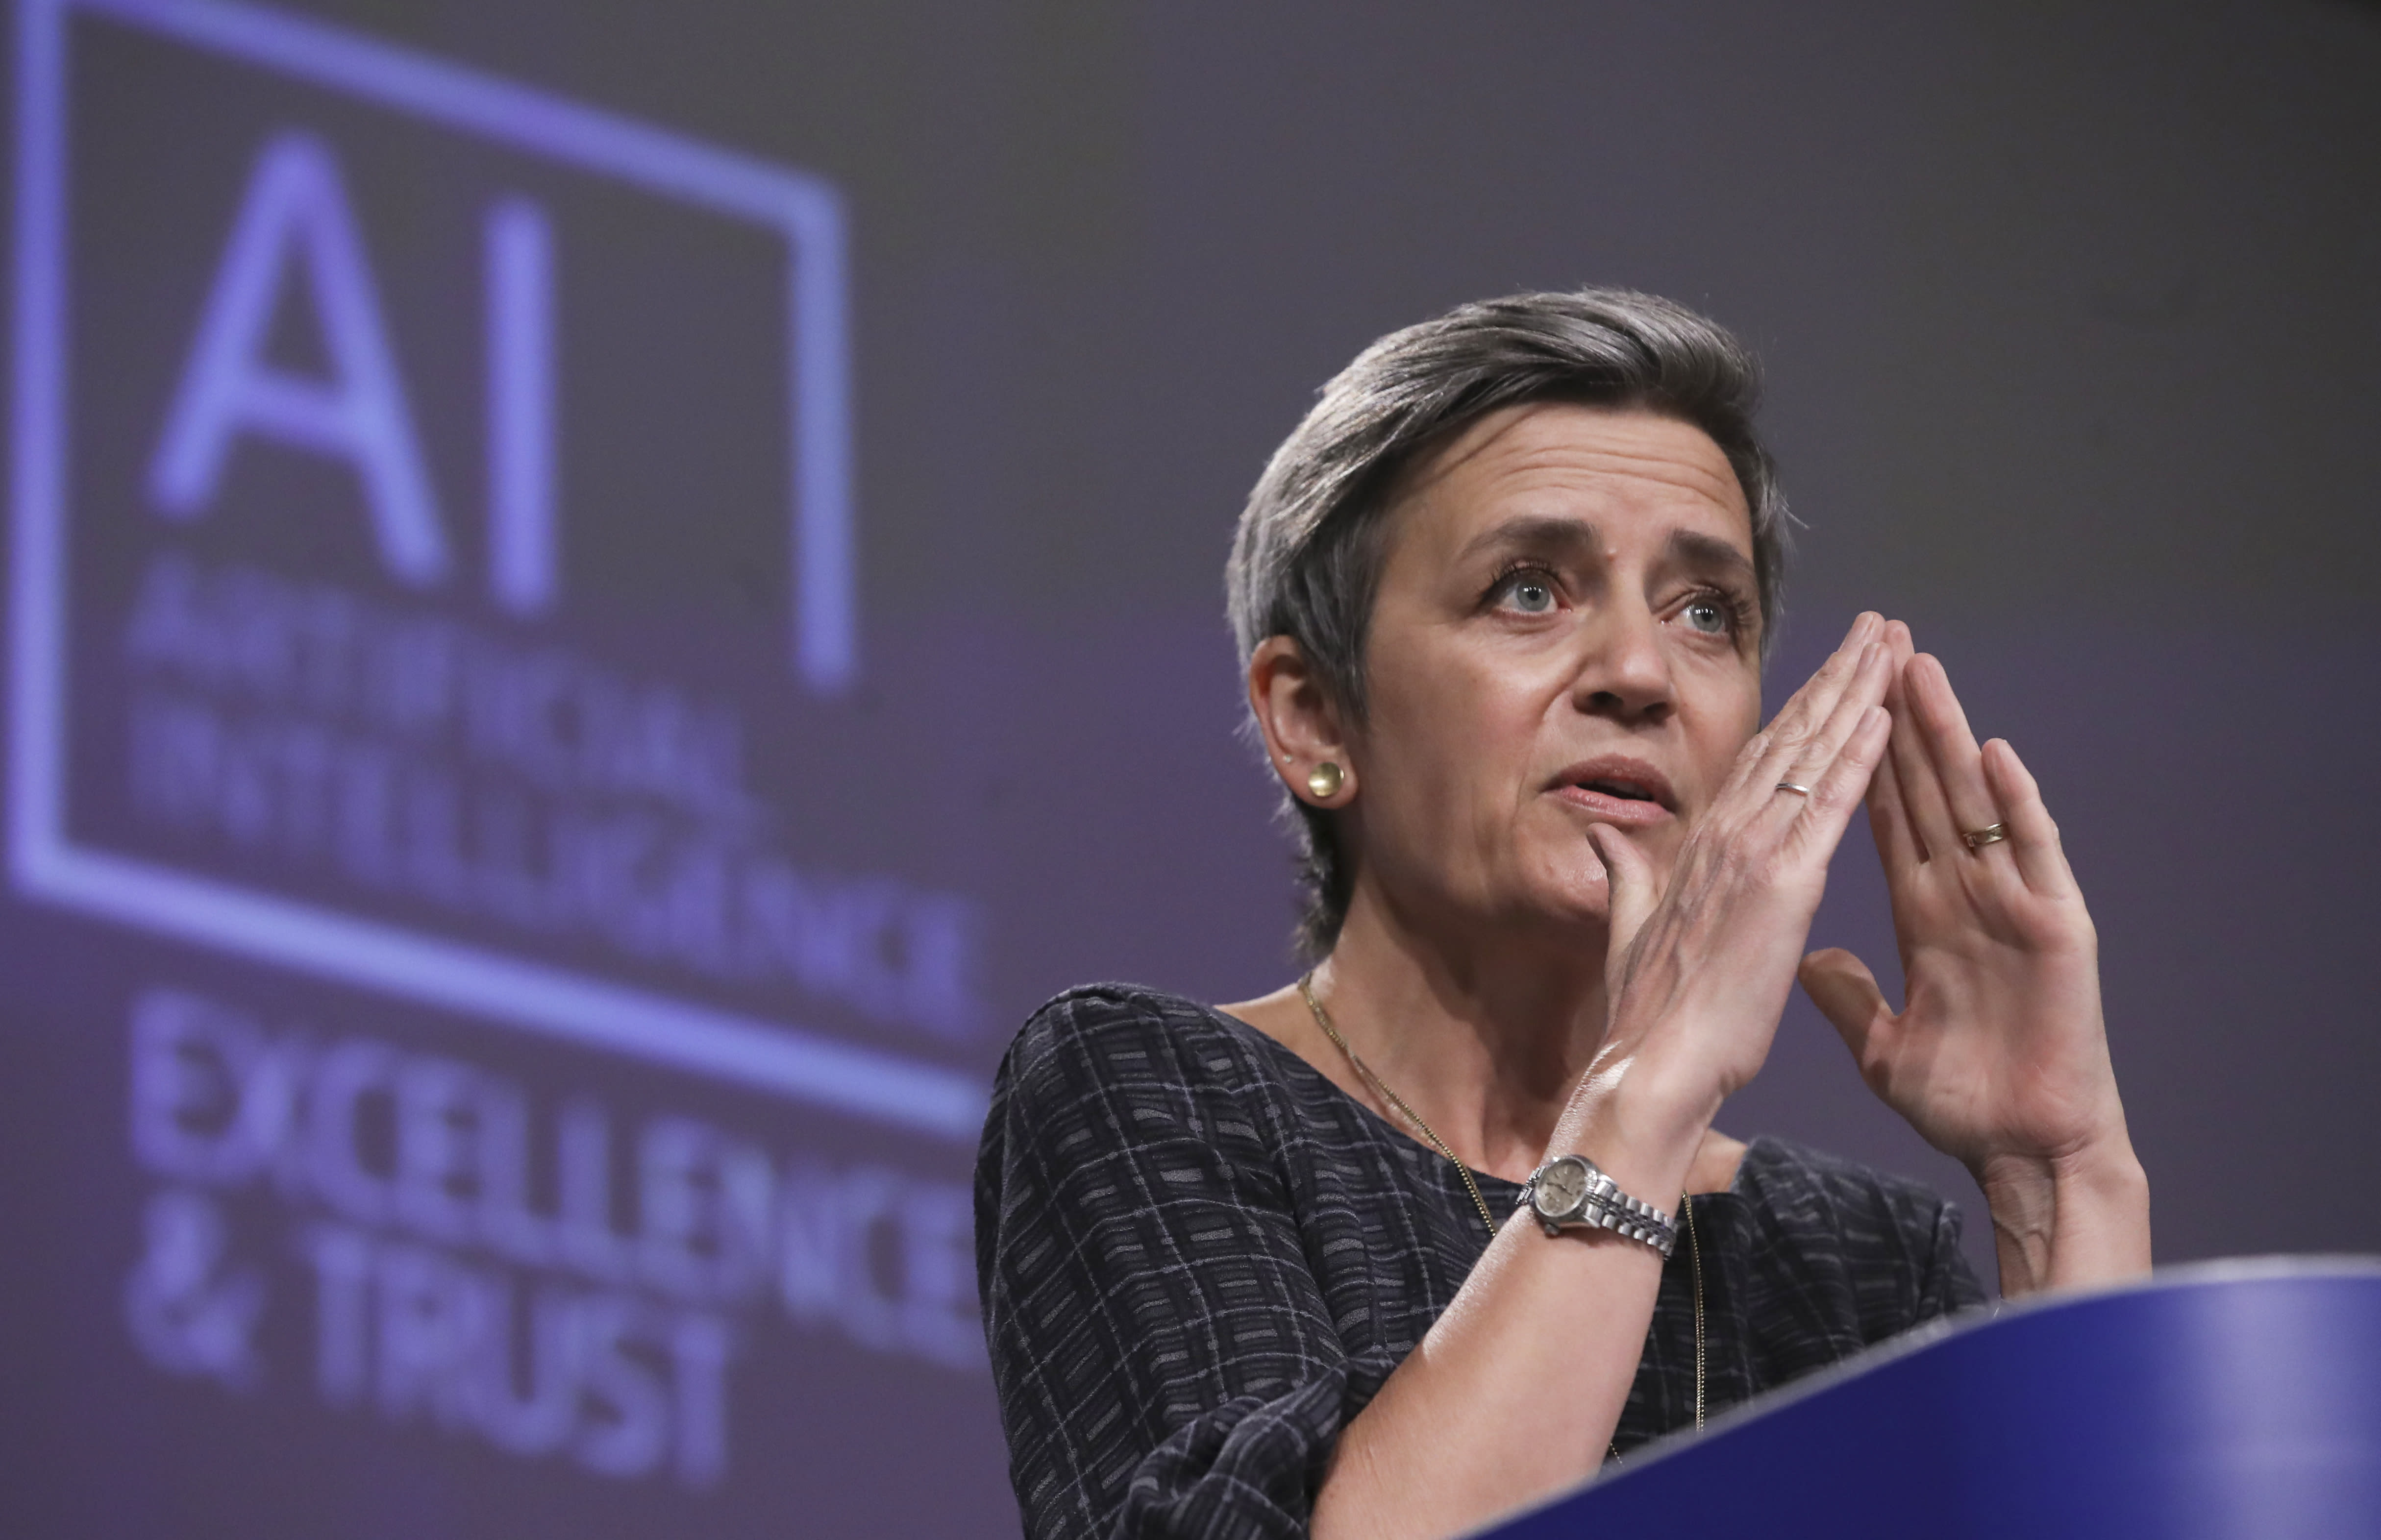 EU outlines ambitious AI regulations focused on risky uses